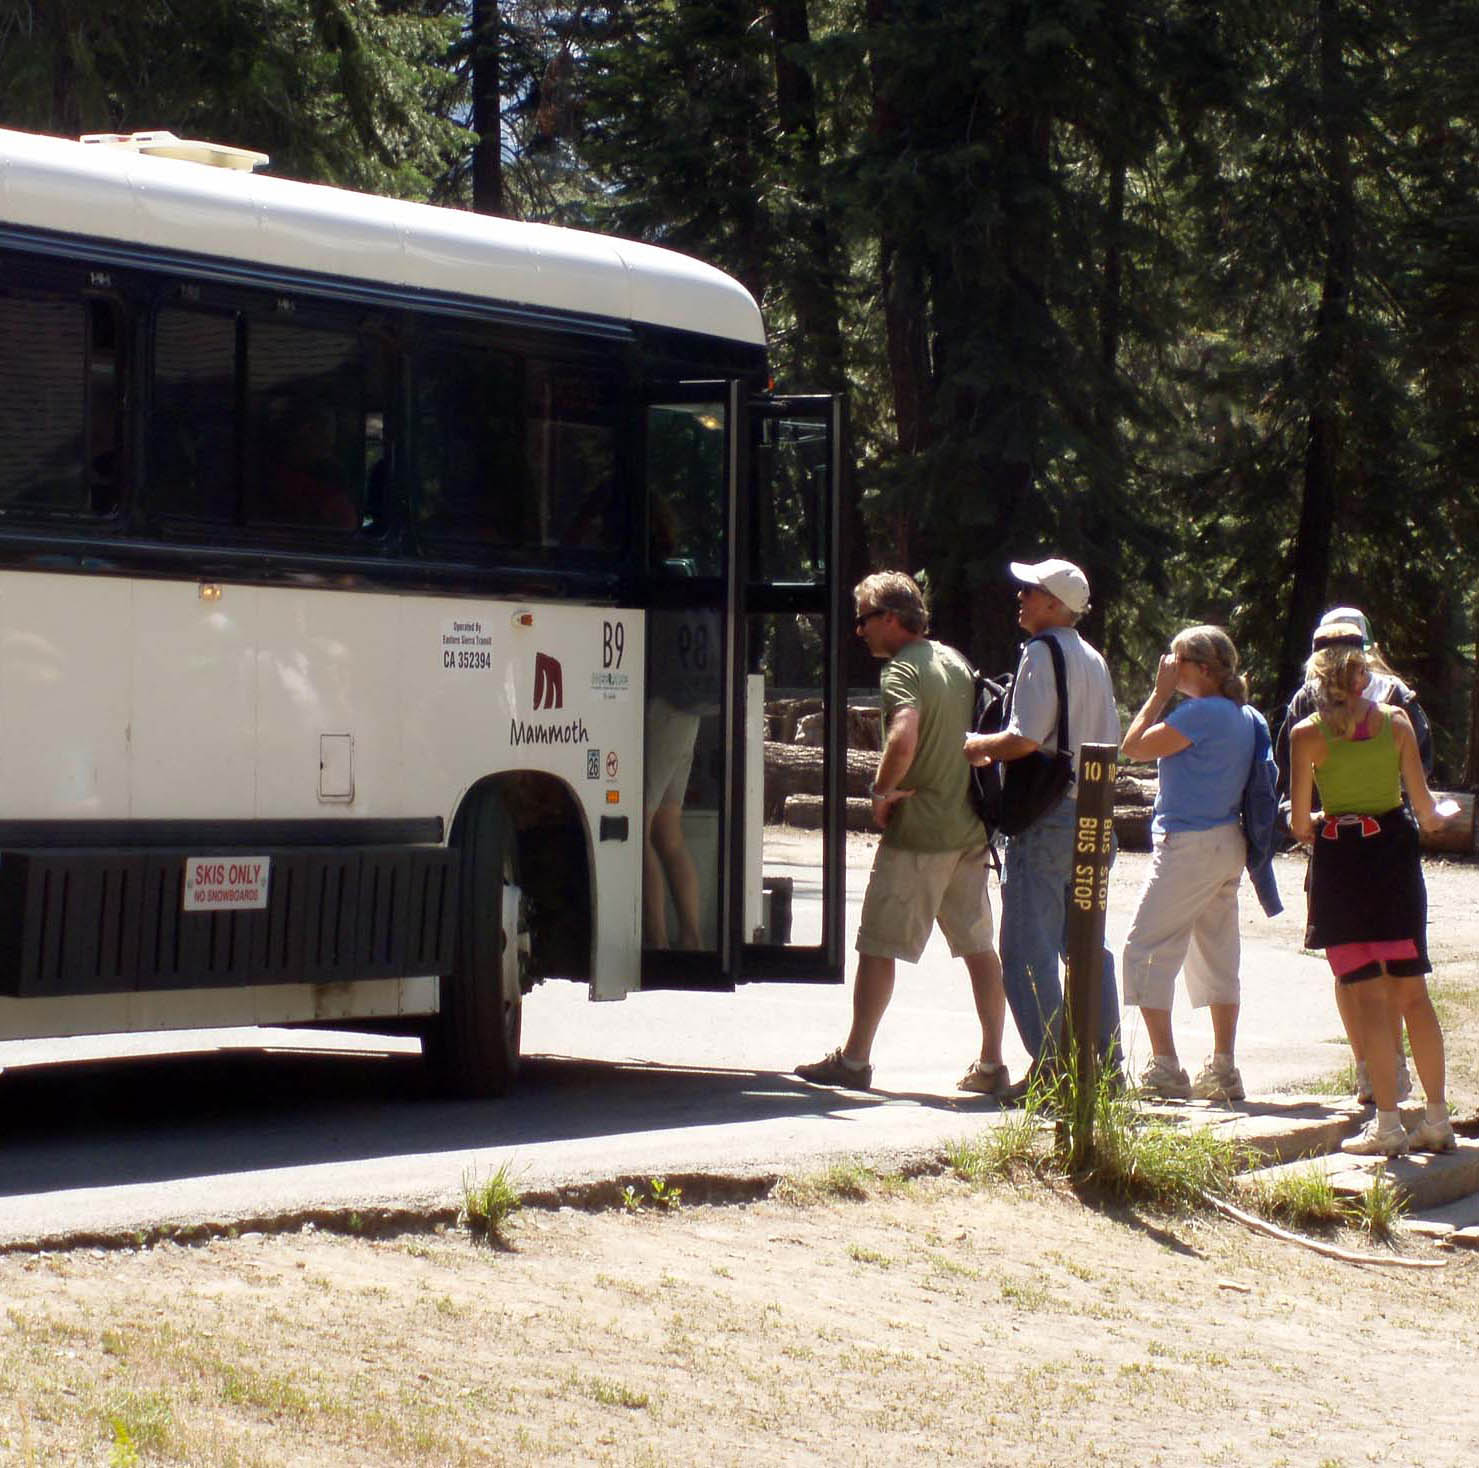 Reds Meadow Shuttle Bus